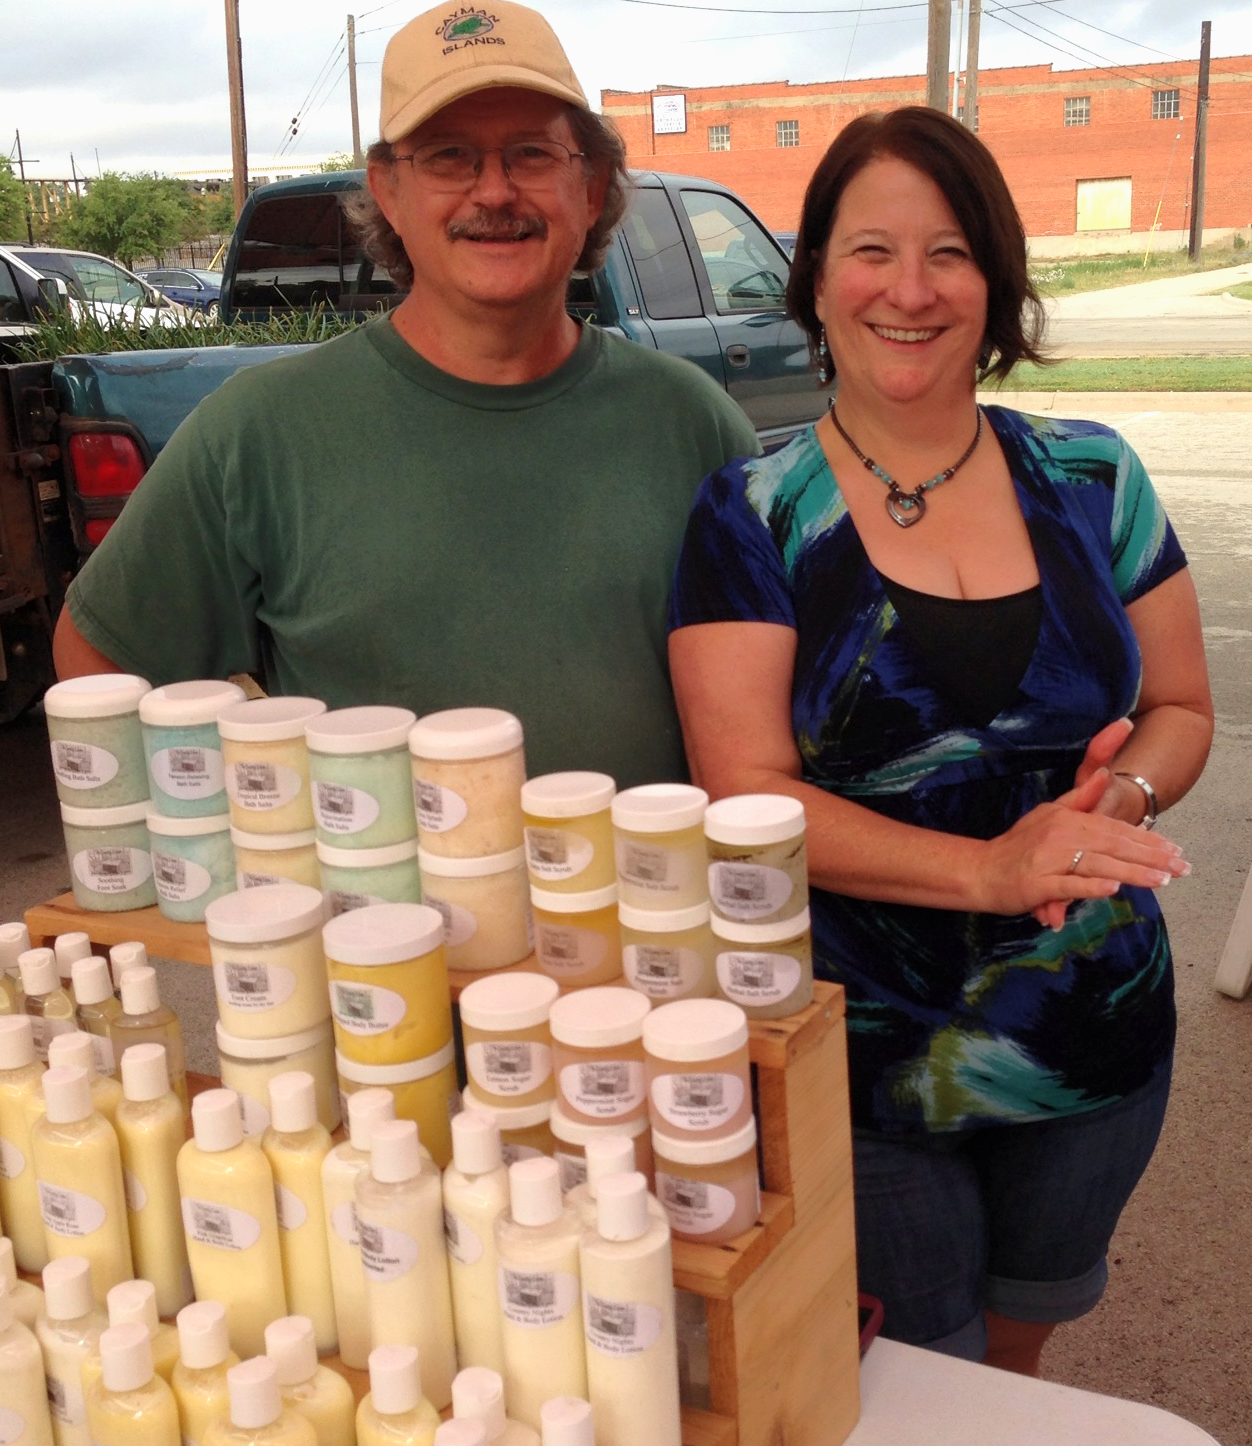 Mike and Patty at the local farmer's market this spring.